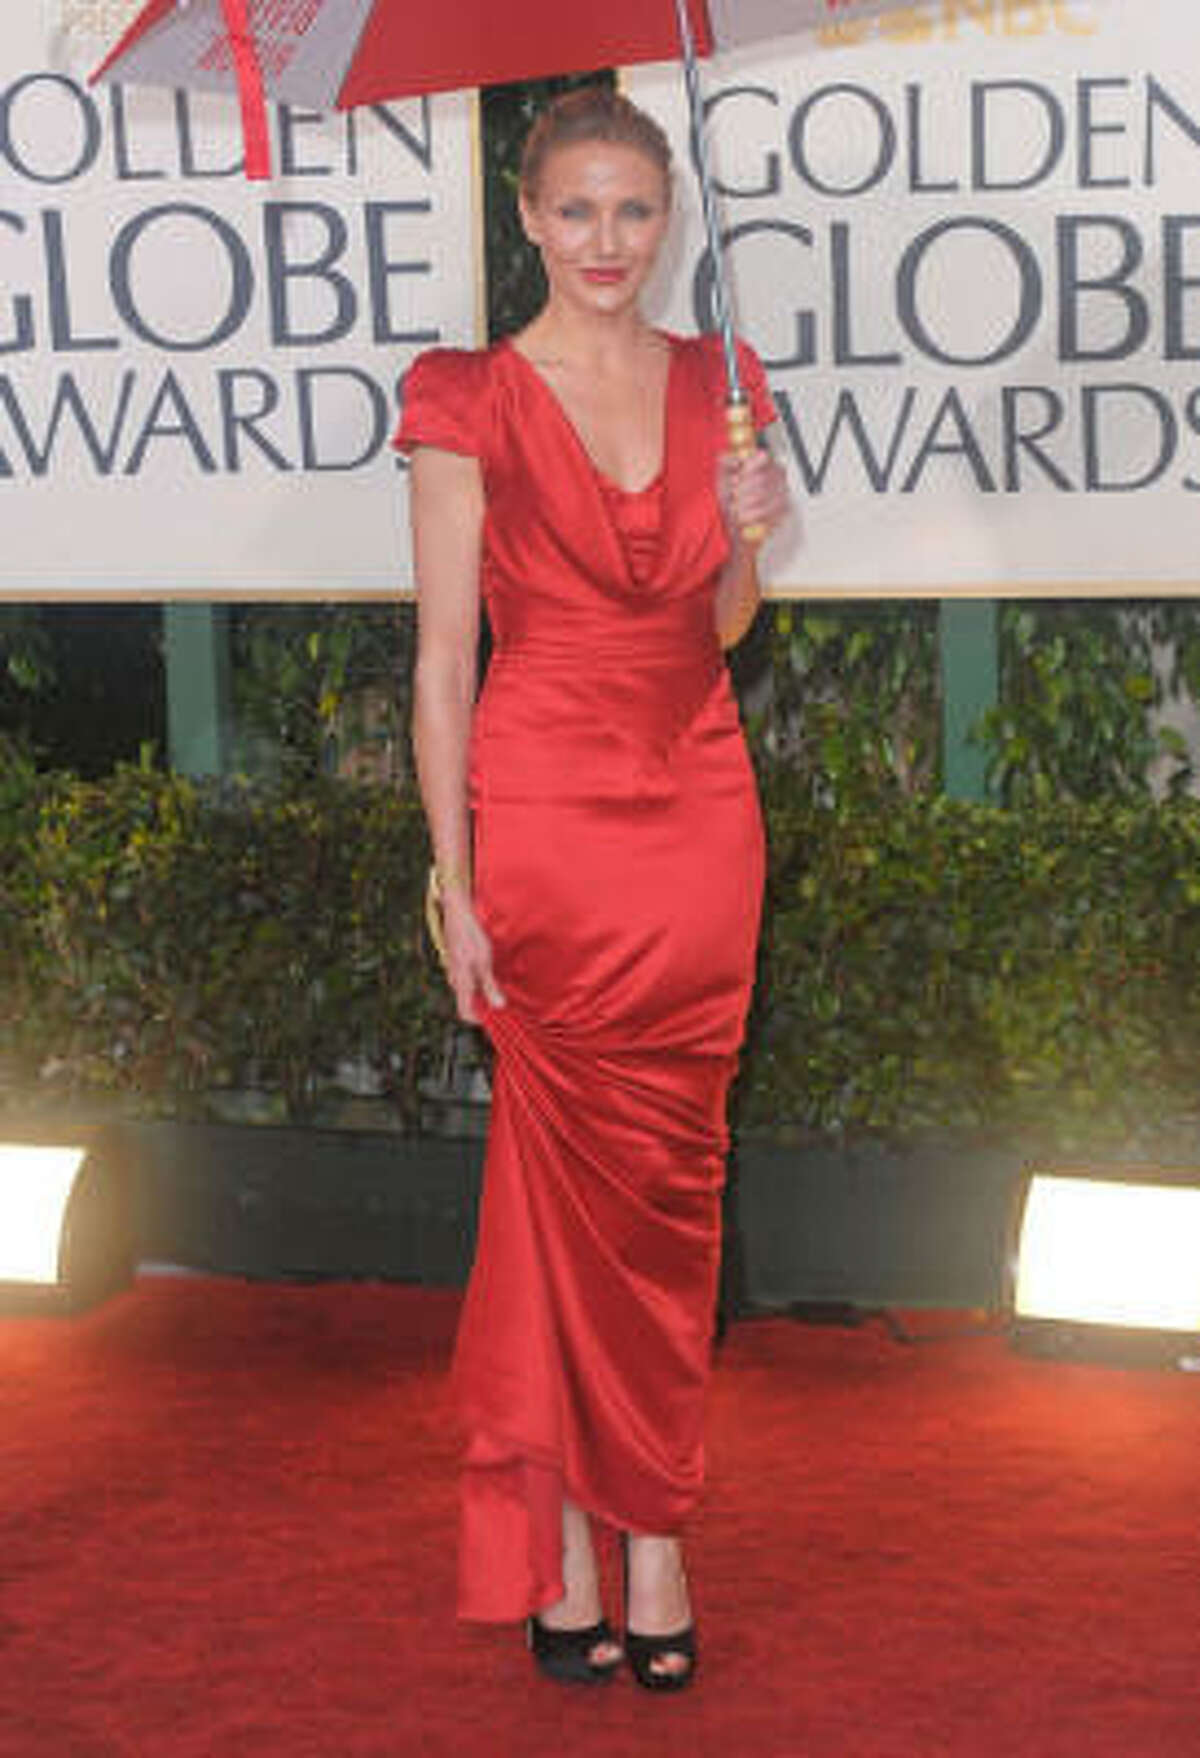 Cameron Diaz wore a red-siren dress to the Golden Globes in January.